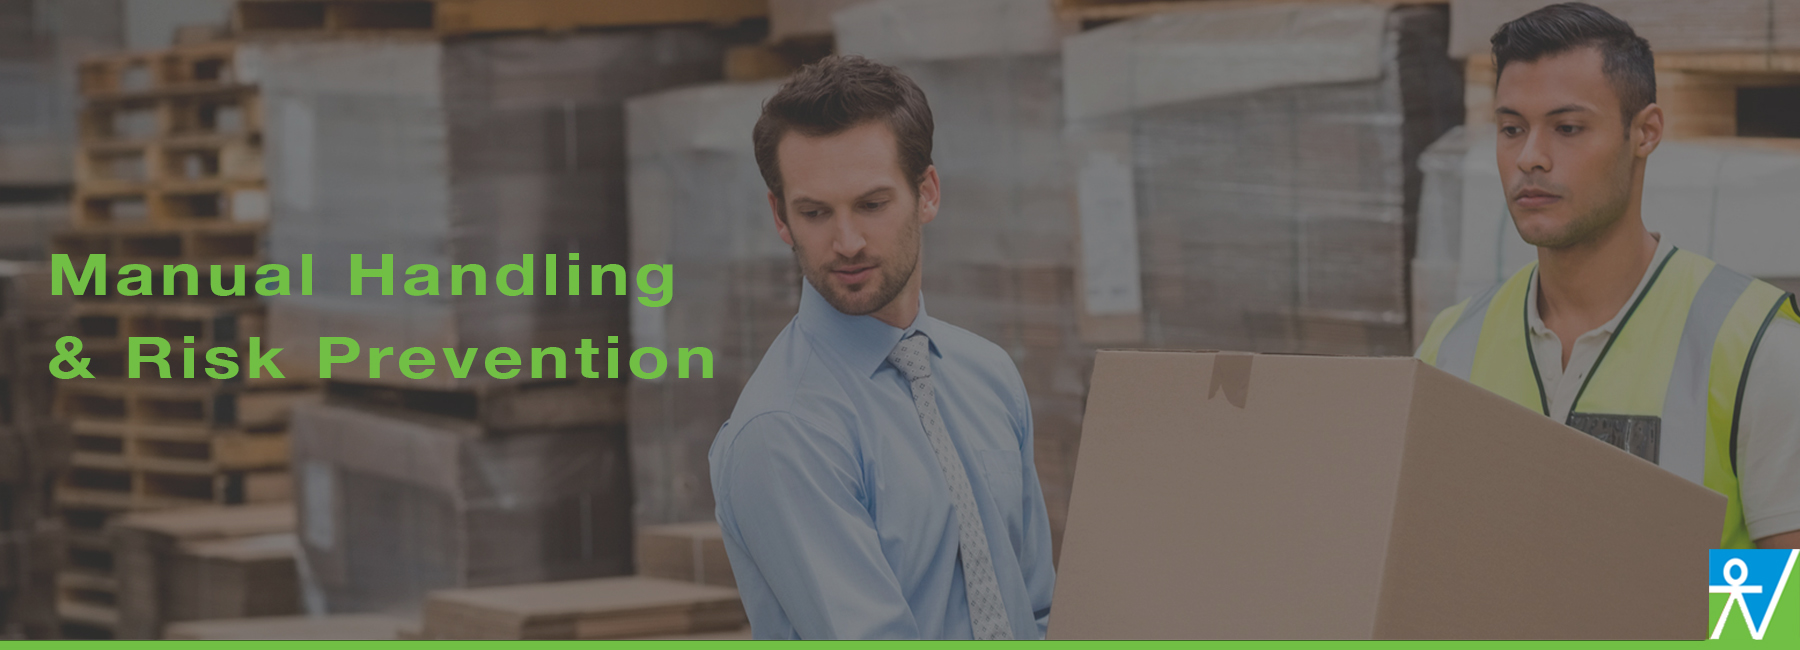 Manual Handling and Risk Prevention at work | Auckland, New Zealand